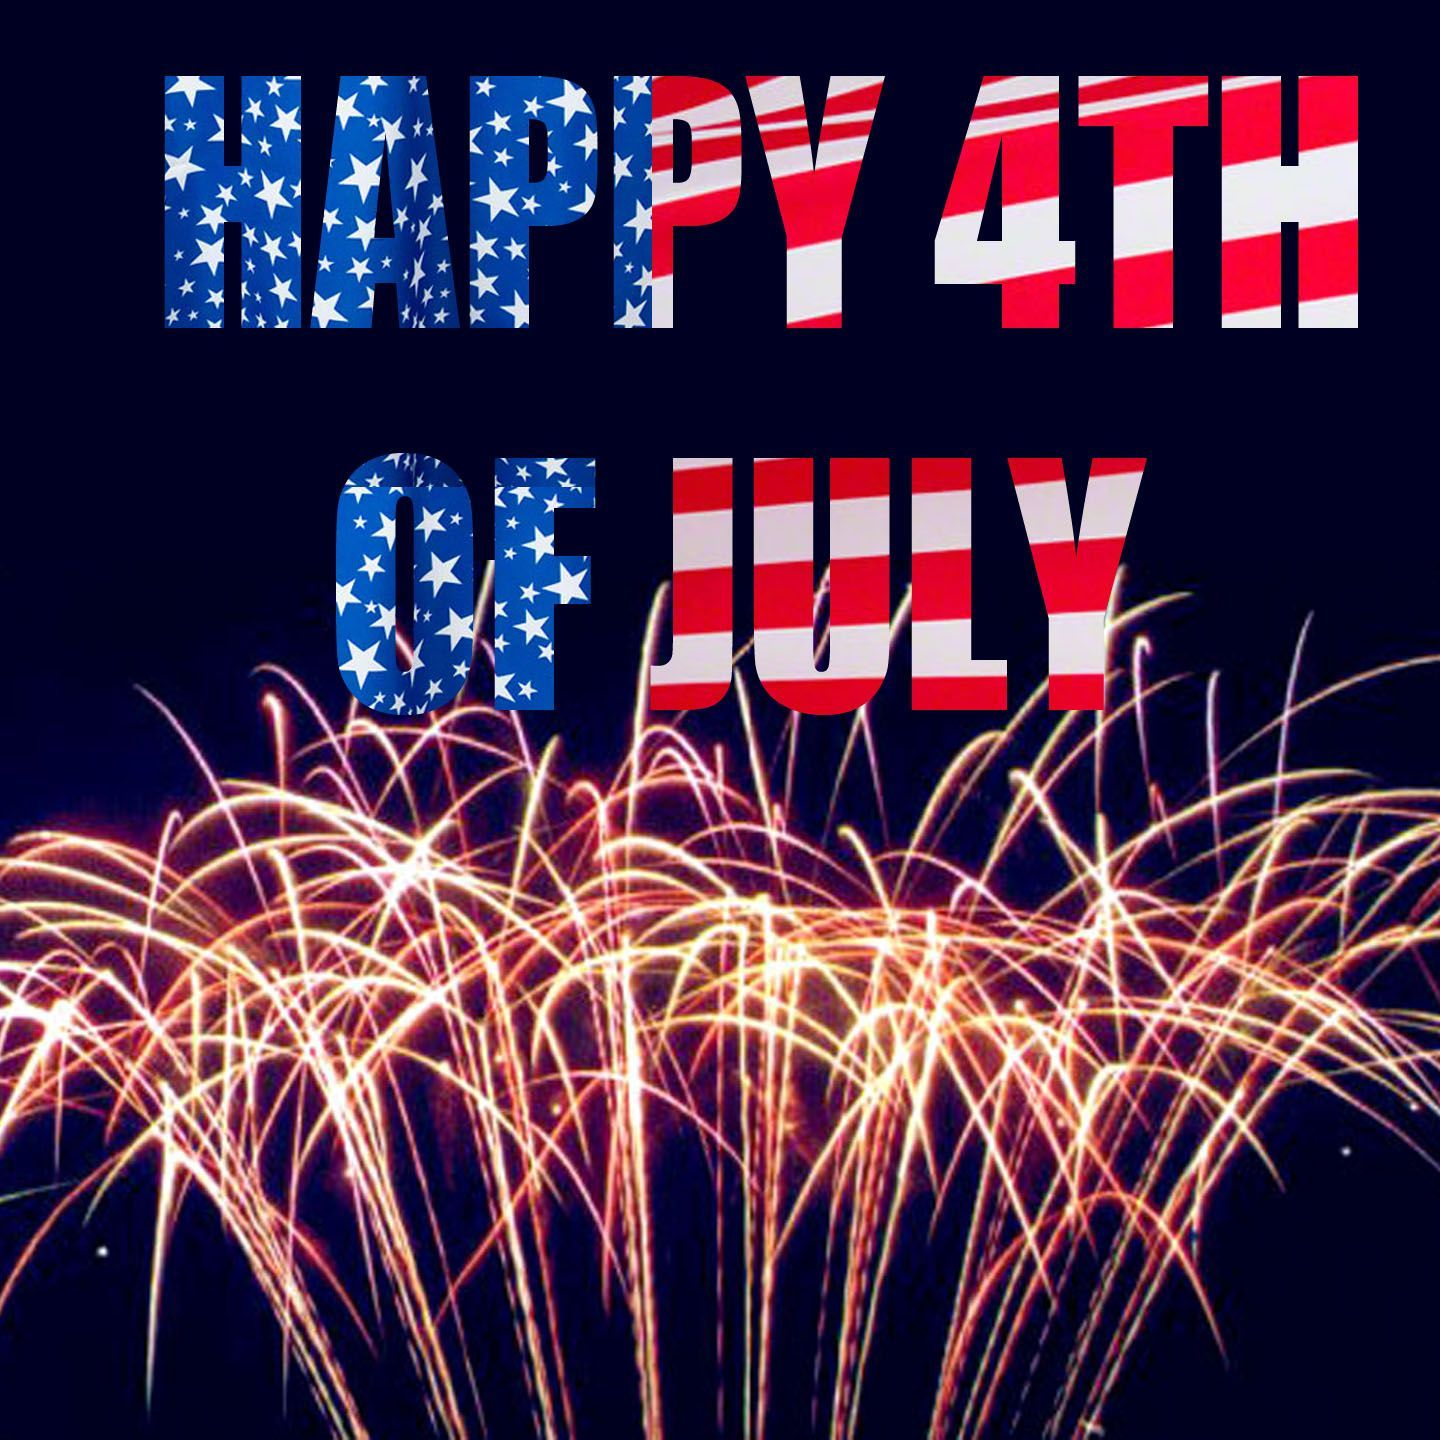 4th Of July 2018 4th Of July Wishes 4th Of July Messages 4th Of July Quotes 4th Of July Sayings 4th Of July Photos 4th Of July Images Happy Fourth Of July